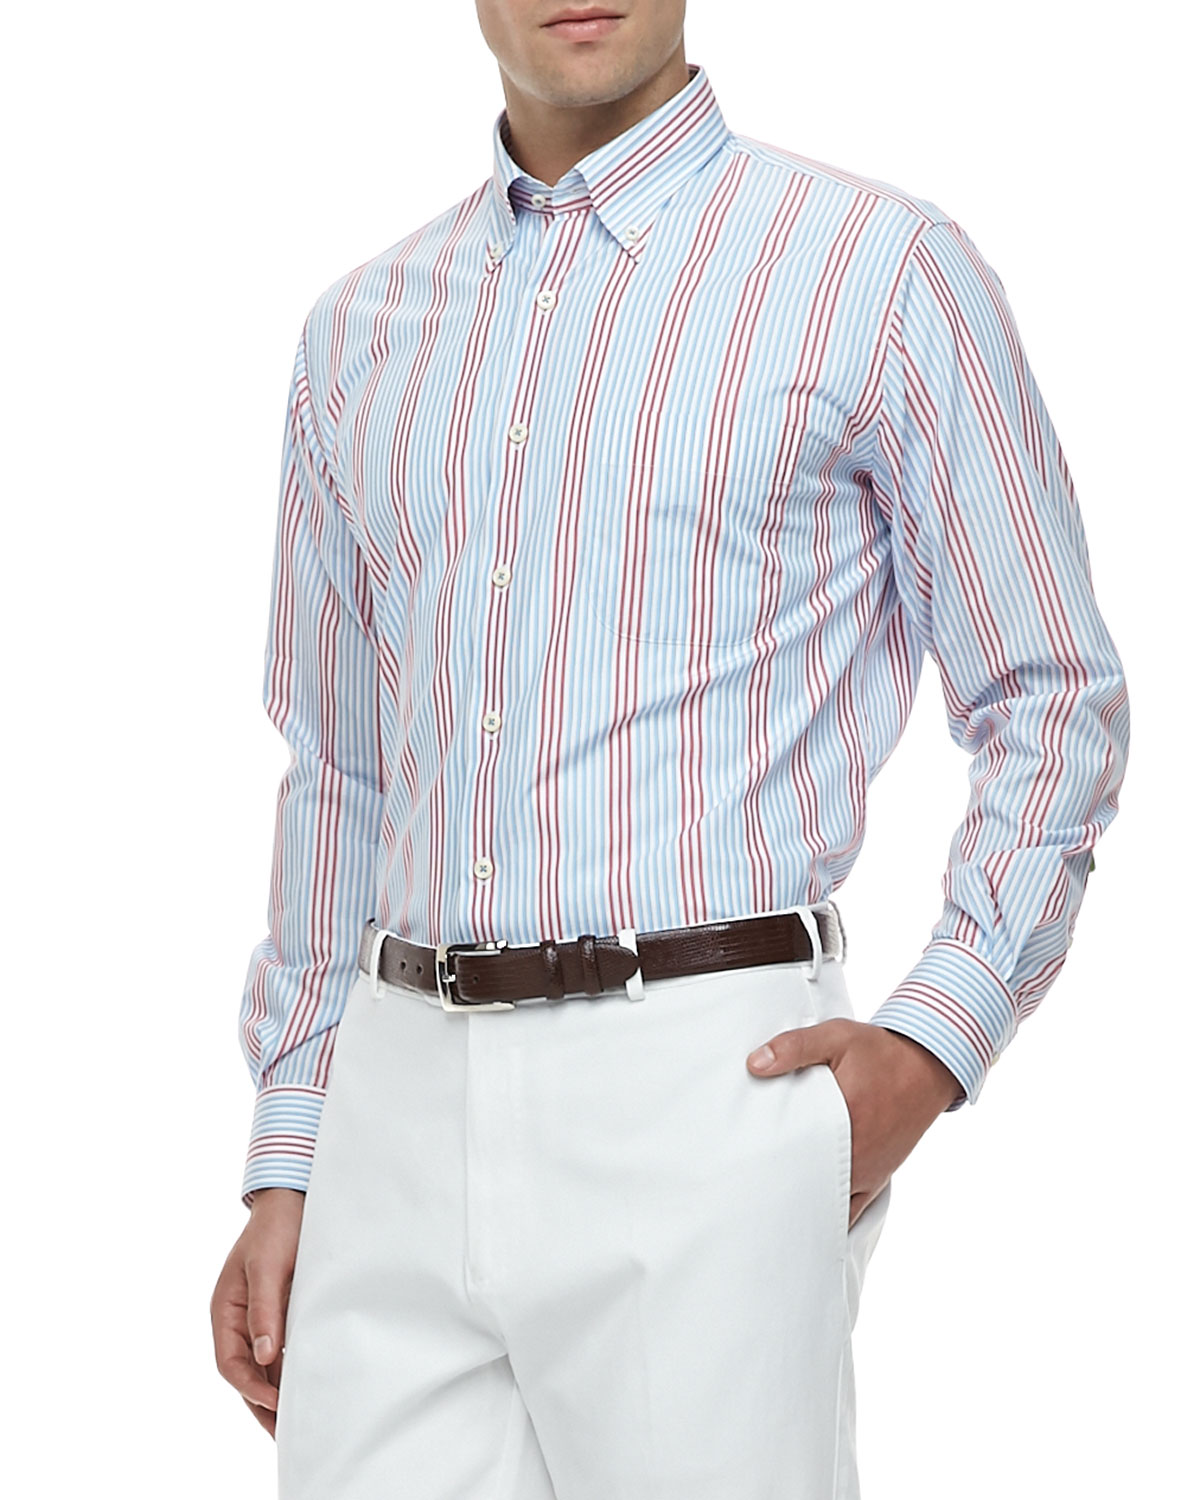 Mens Port Striped Long Sleeve Shirt, Blue/Red   Peter Millar   Blue/Red (LARGE)